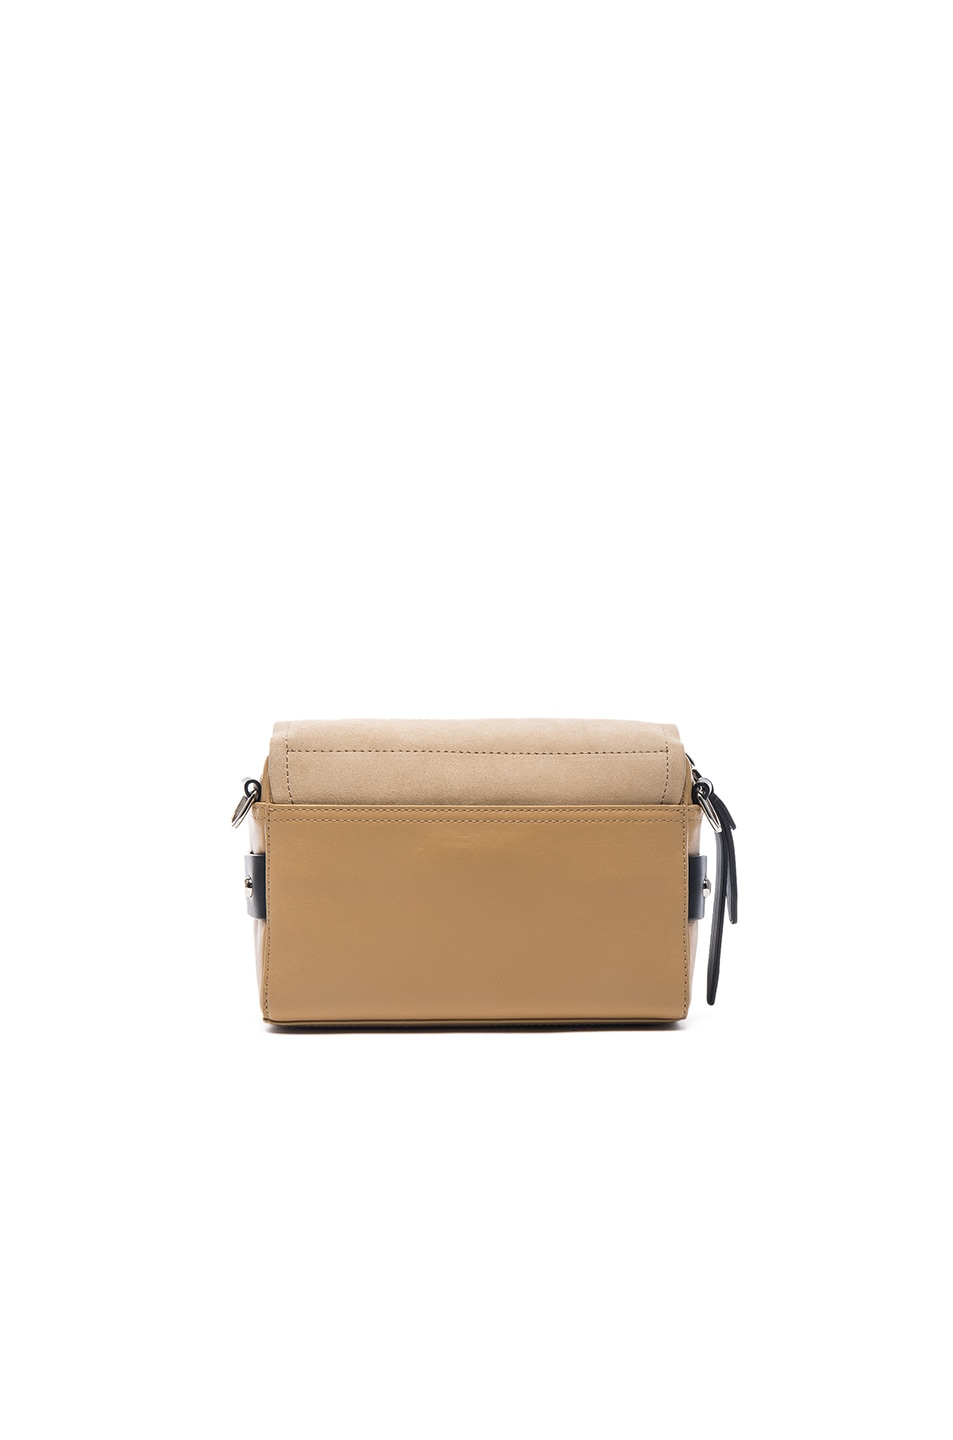 Image 3 of 3.1 phillip lim Bianca Fringe Crossbody Bag in Almond Beige